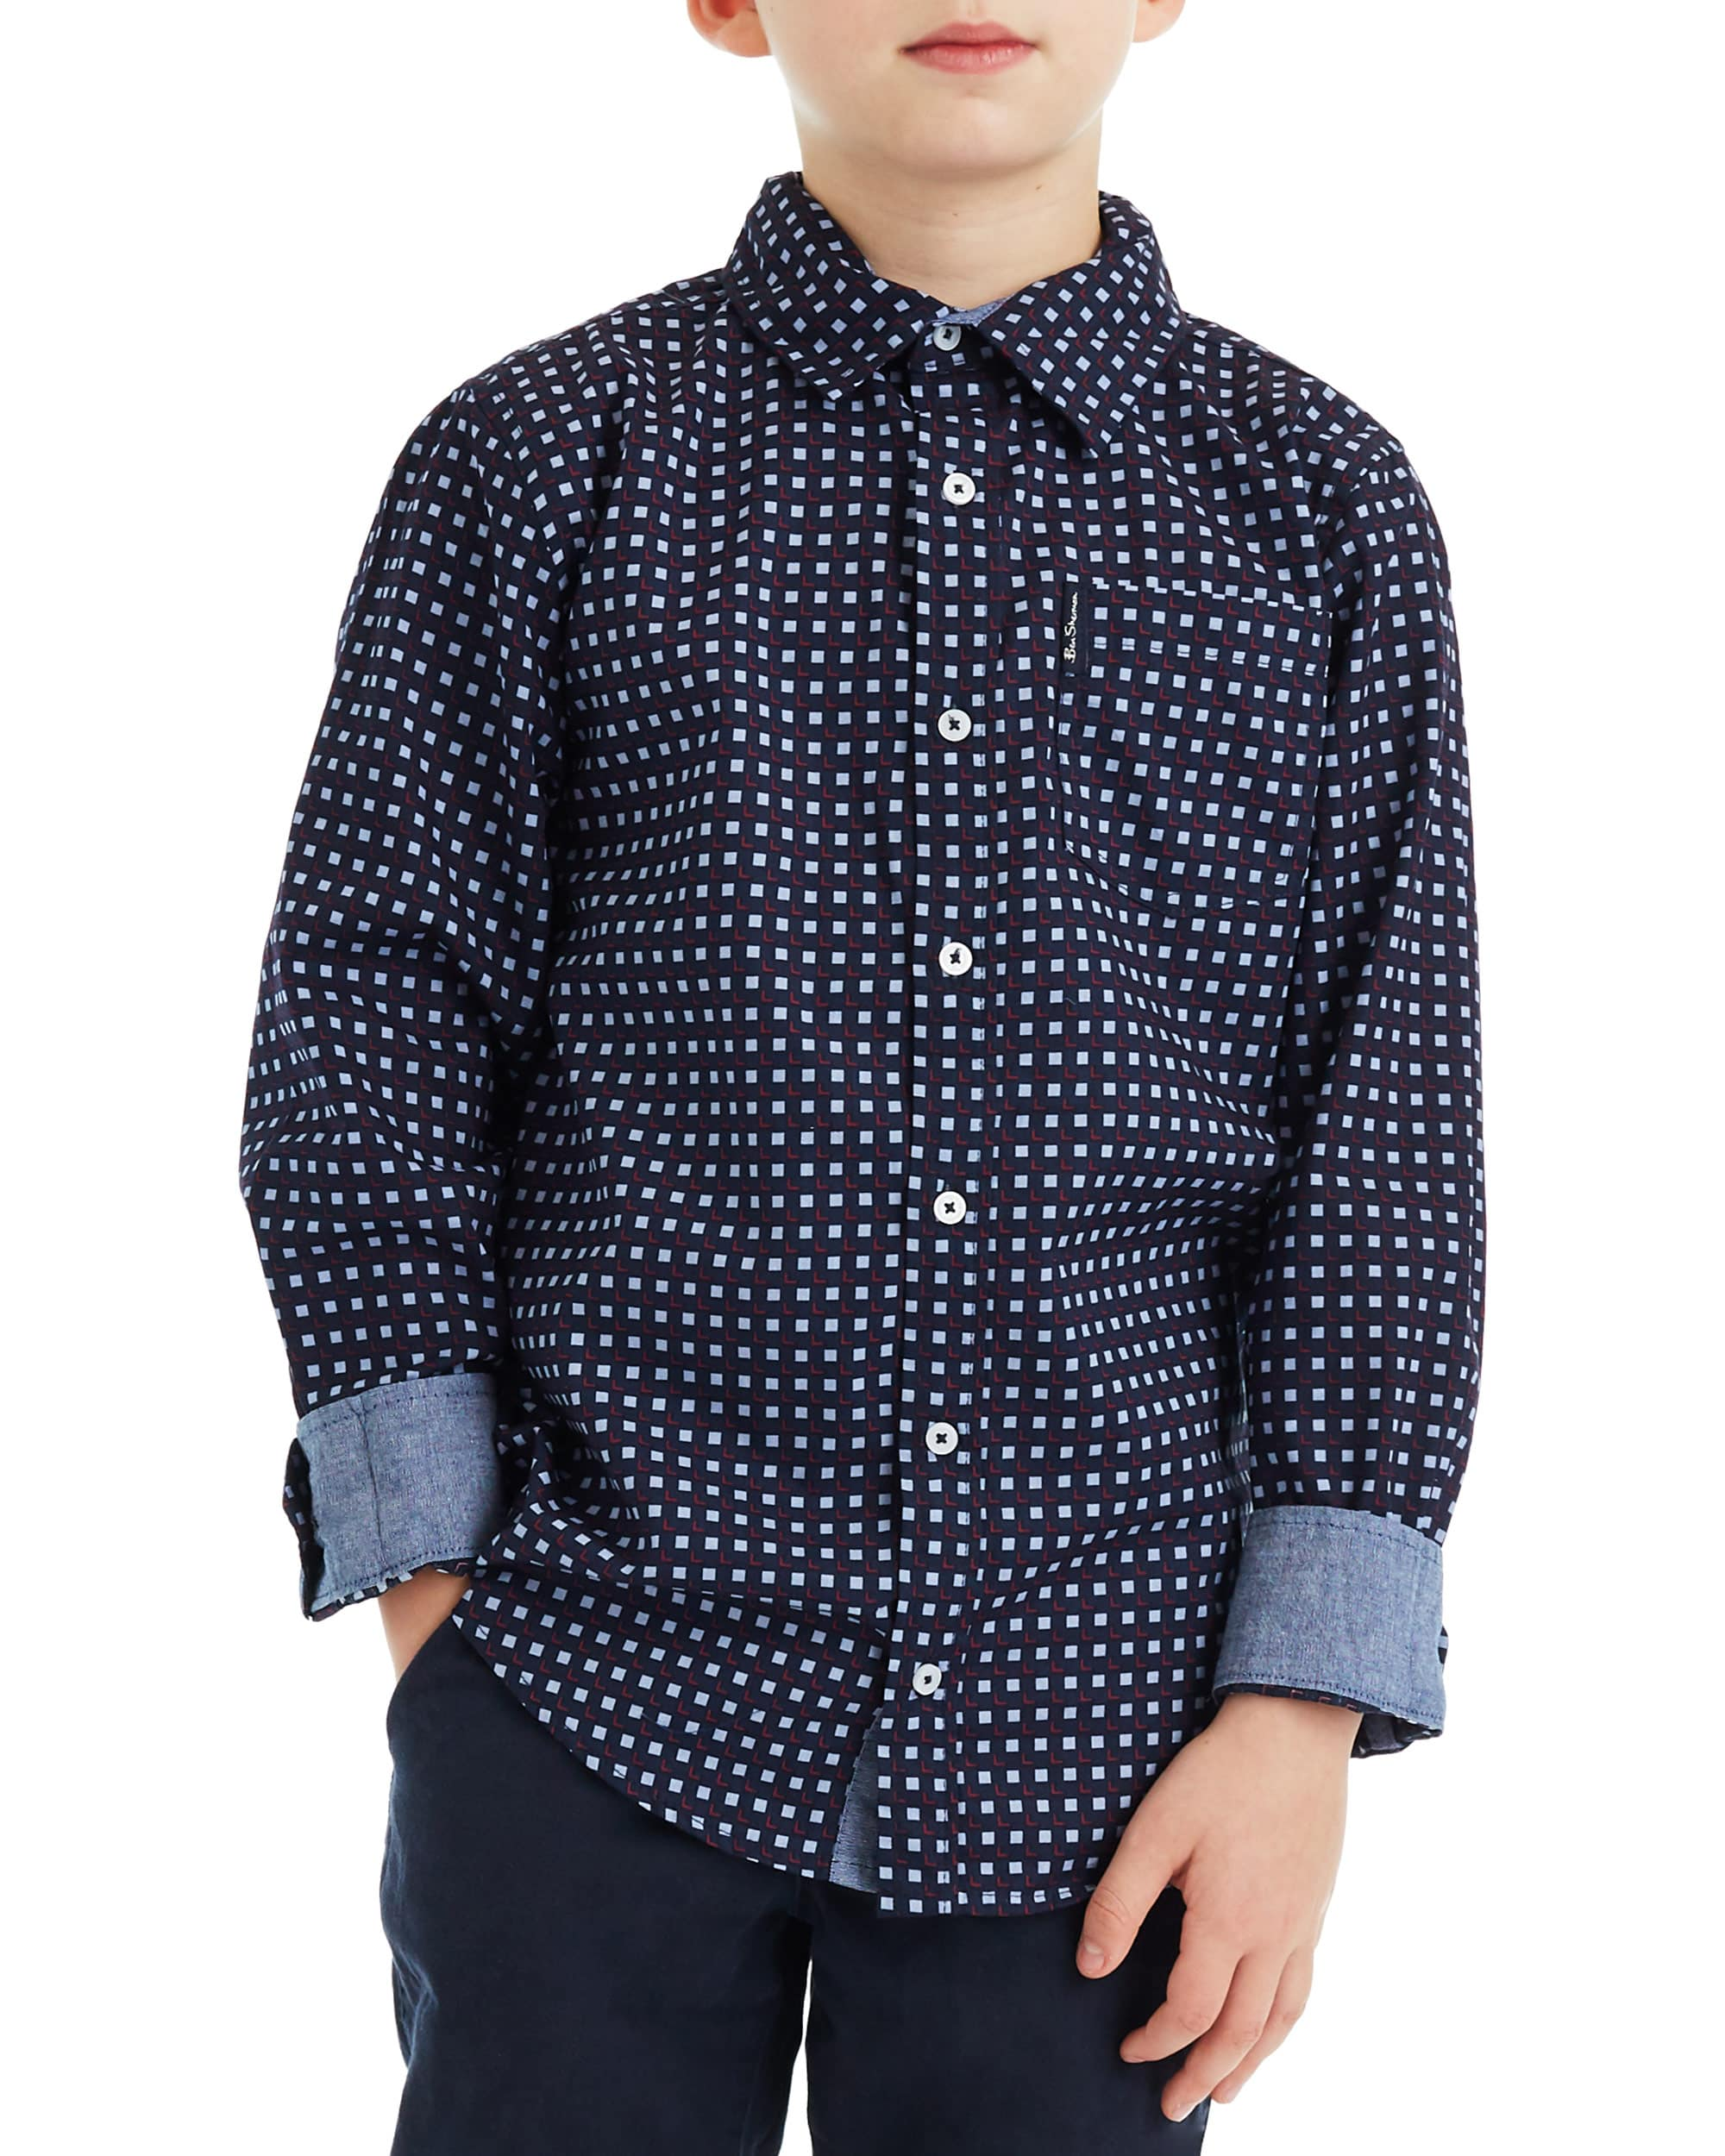 Boys' Navy Long-Sleeve Square Print Button-Down Shirt (Sizes 8-18)